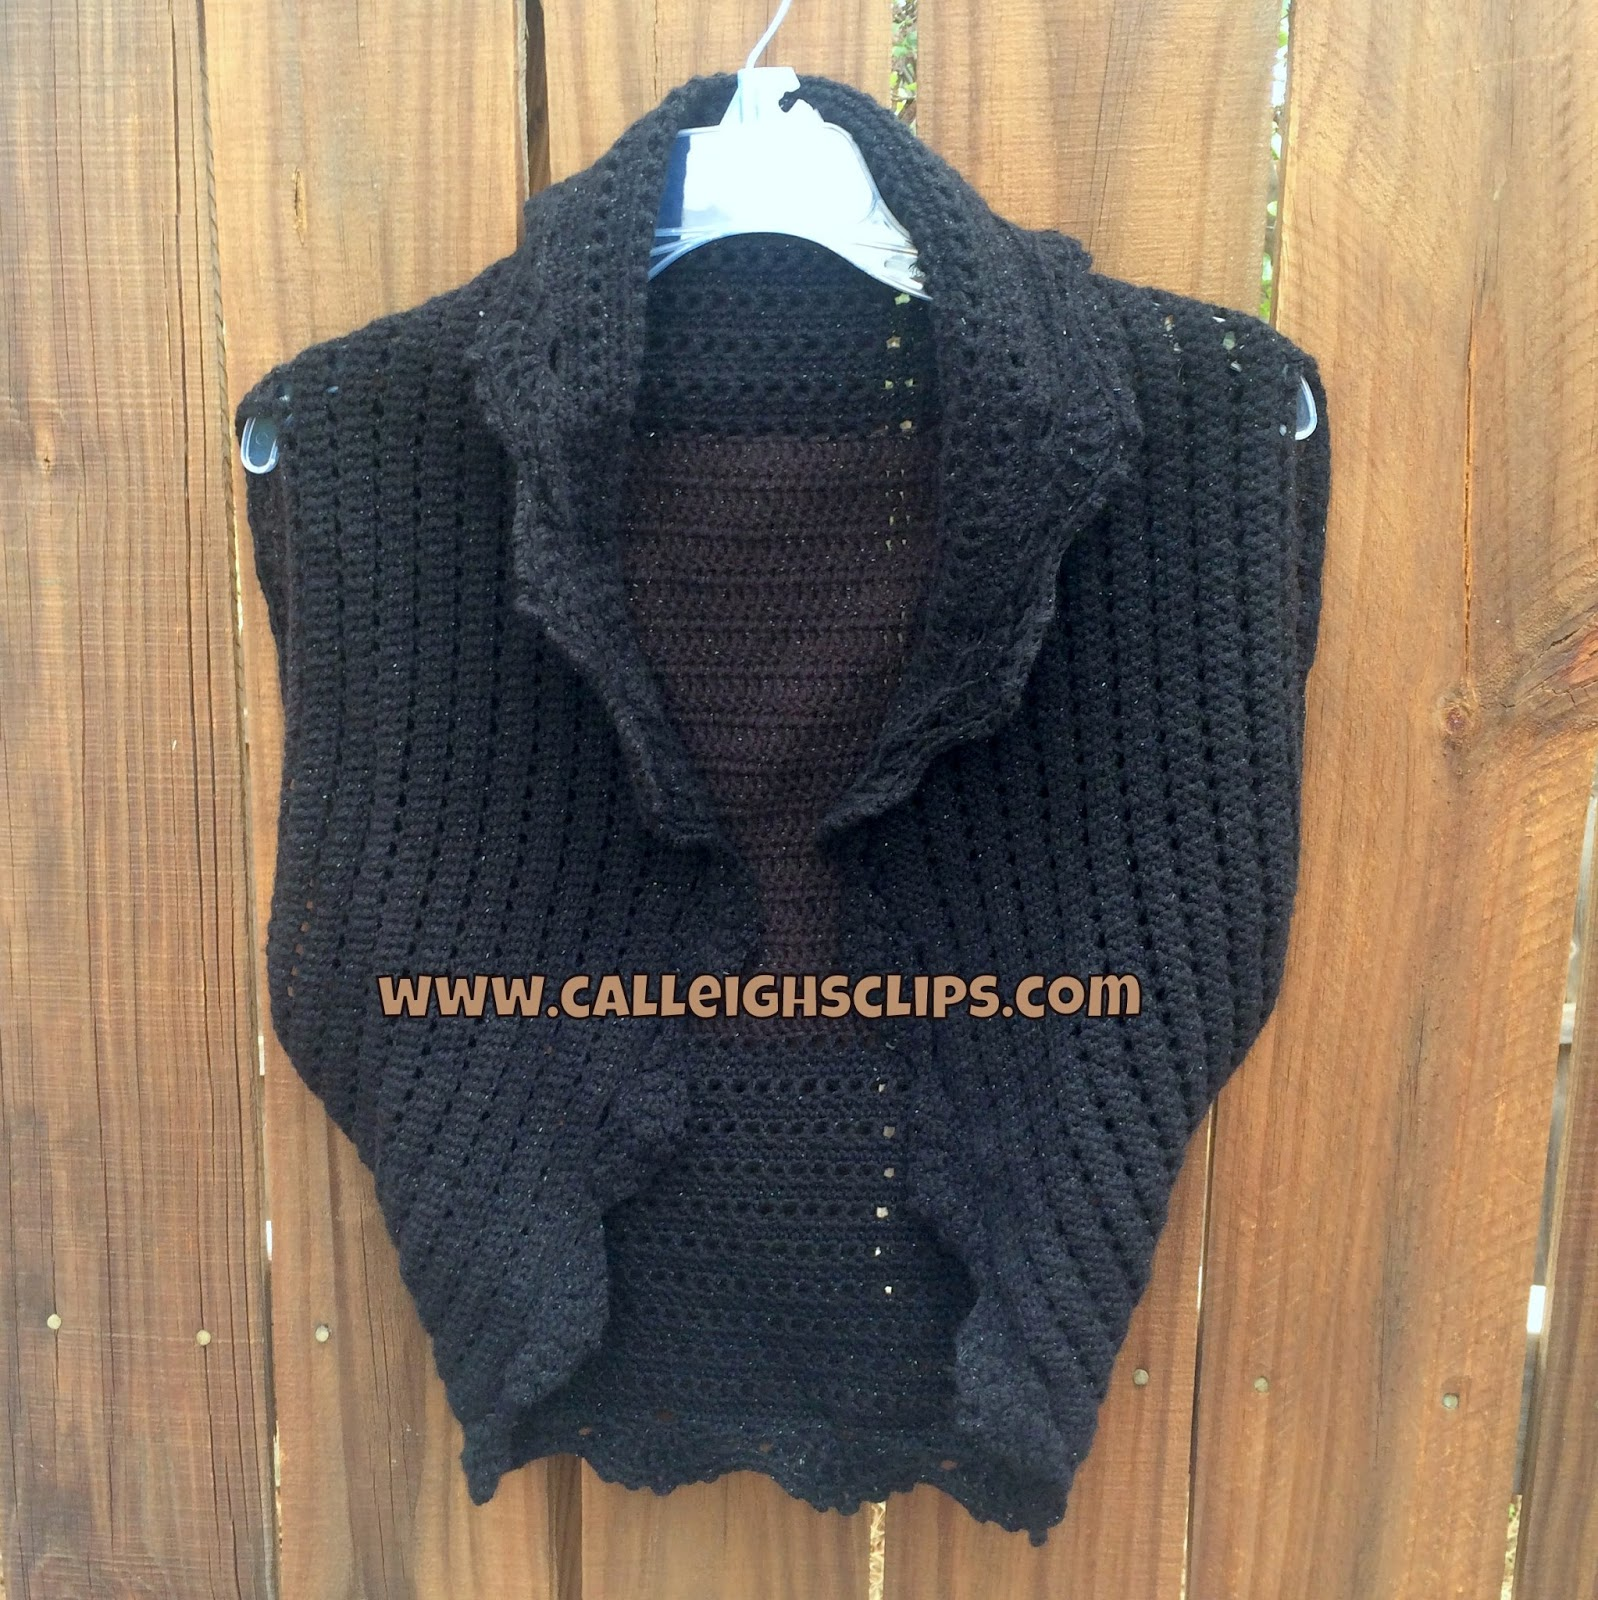 Calleighs Clips Crochet Creations Drops Waistcoat Pattern Review